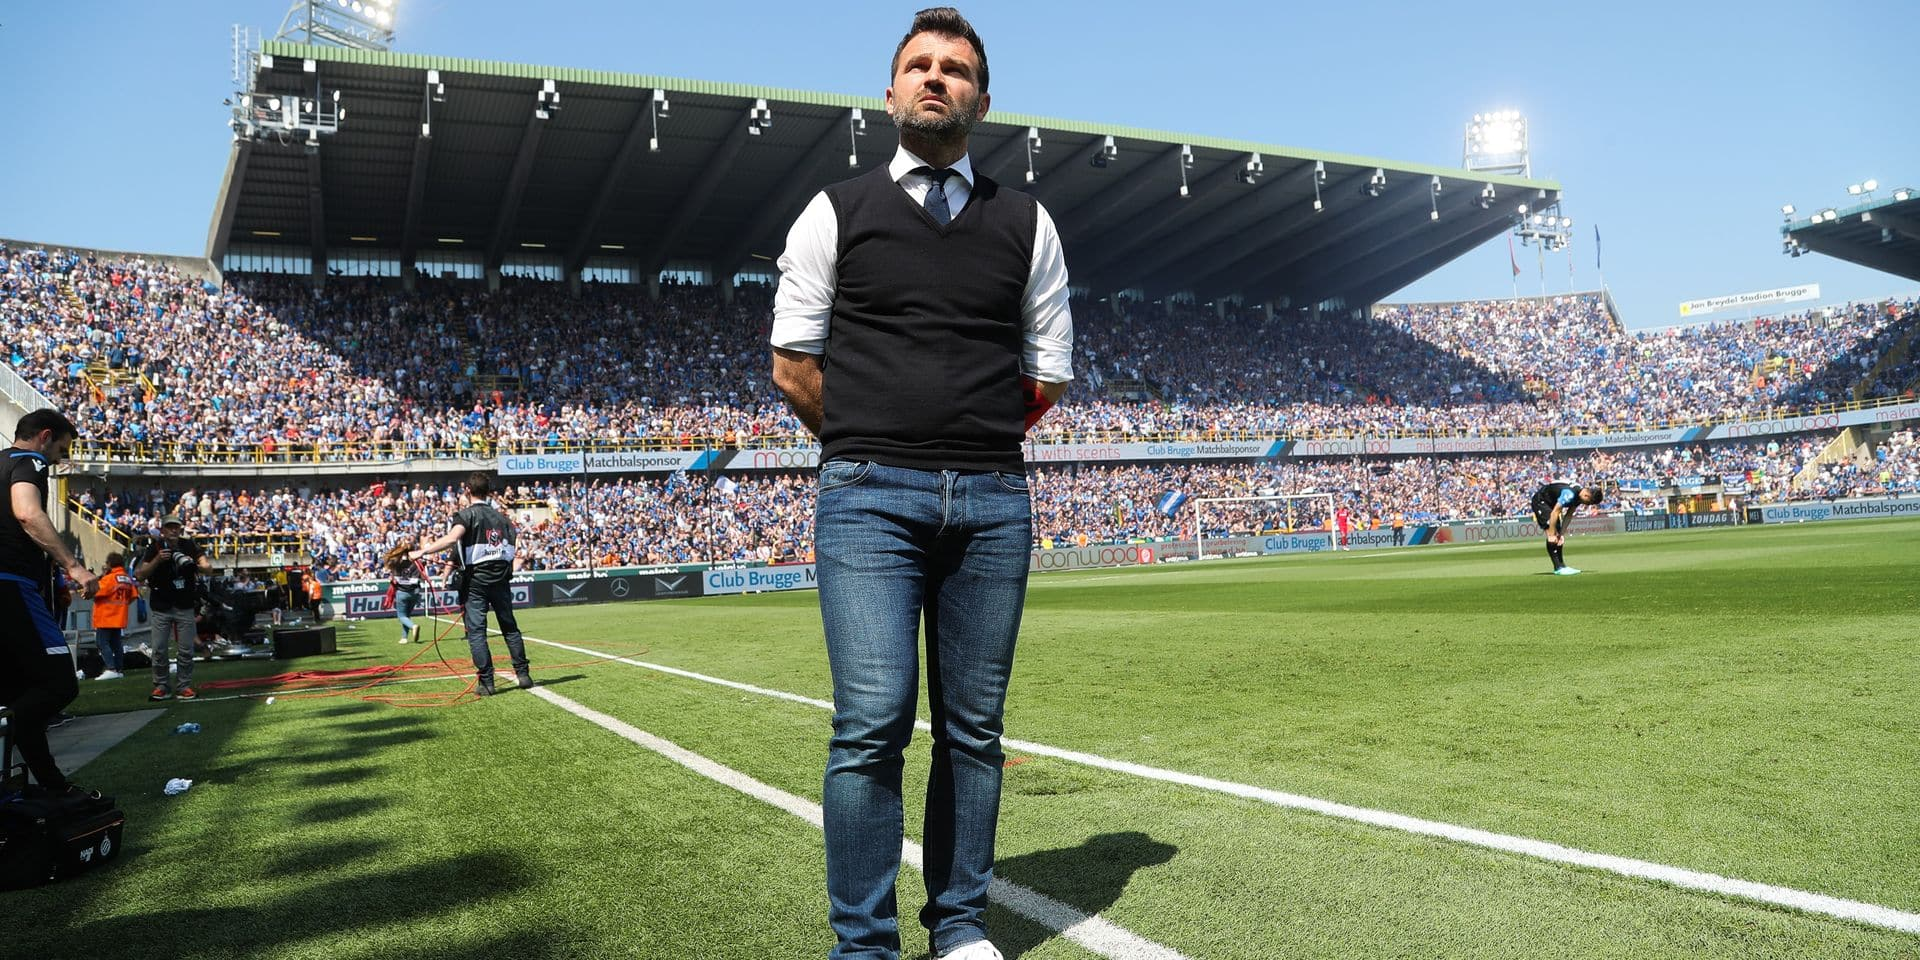 Club Brugge's head coach Ivan Leko pictured during the Jupiler Pro League match between Club Brugge KV and RSC Anderlecht, in Brugge, Sunday 06 May 2018, on day seven of the Play-Off 1 of the Belgian soccer championship. BELGA PHOTO BRUNO FAHY